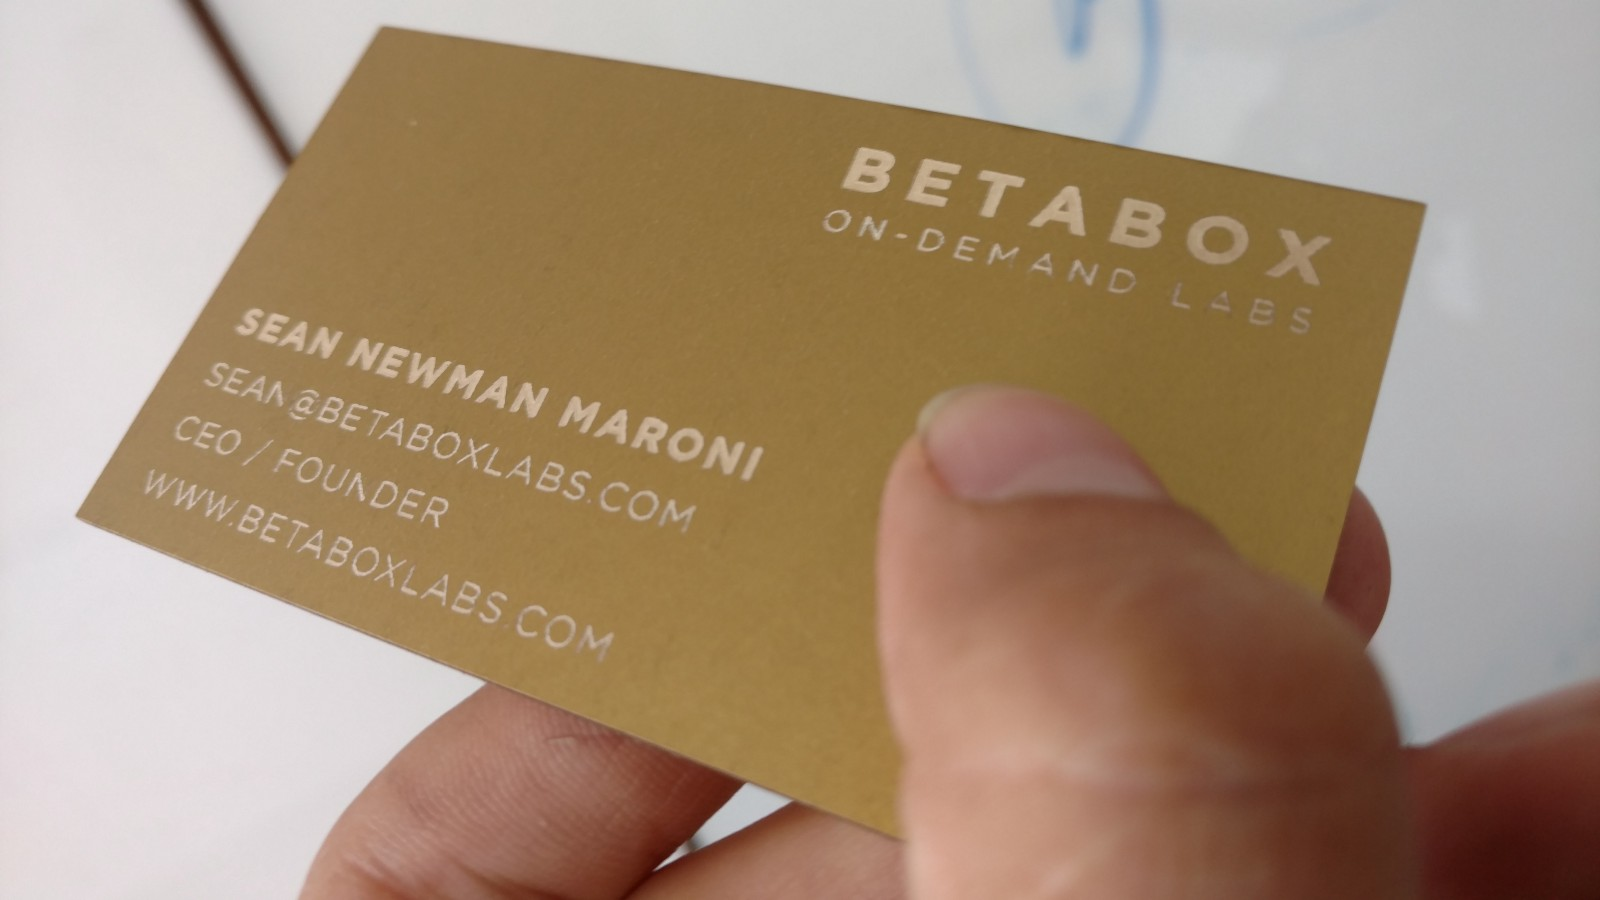 Making laser cut business cards in a Betabox Prototyping Lab